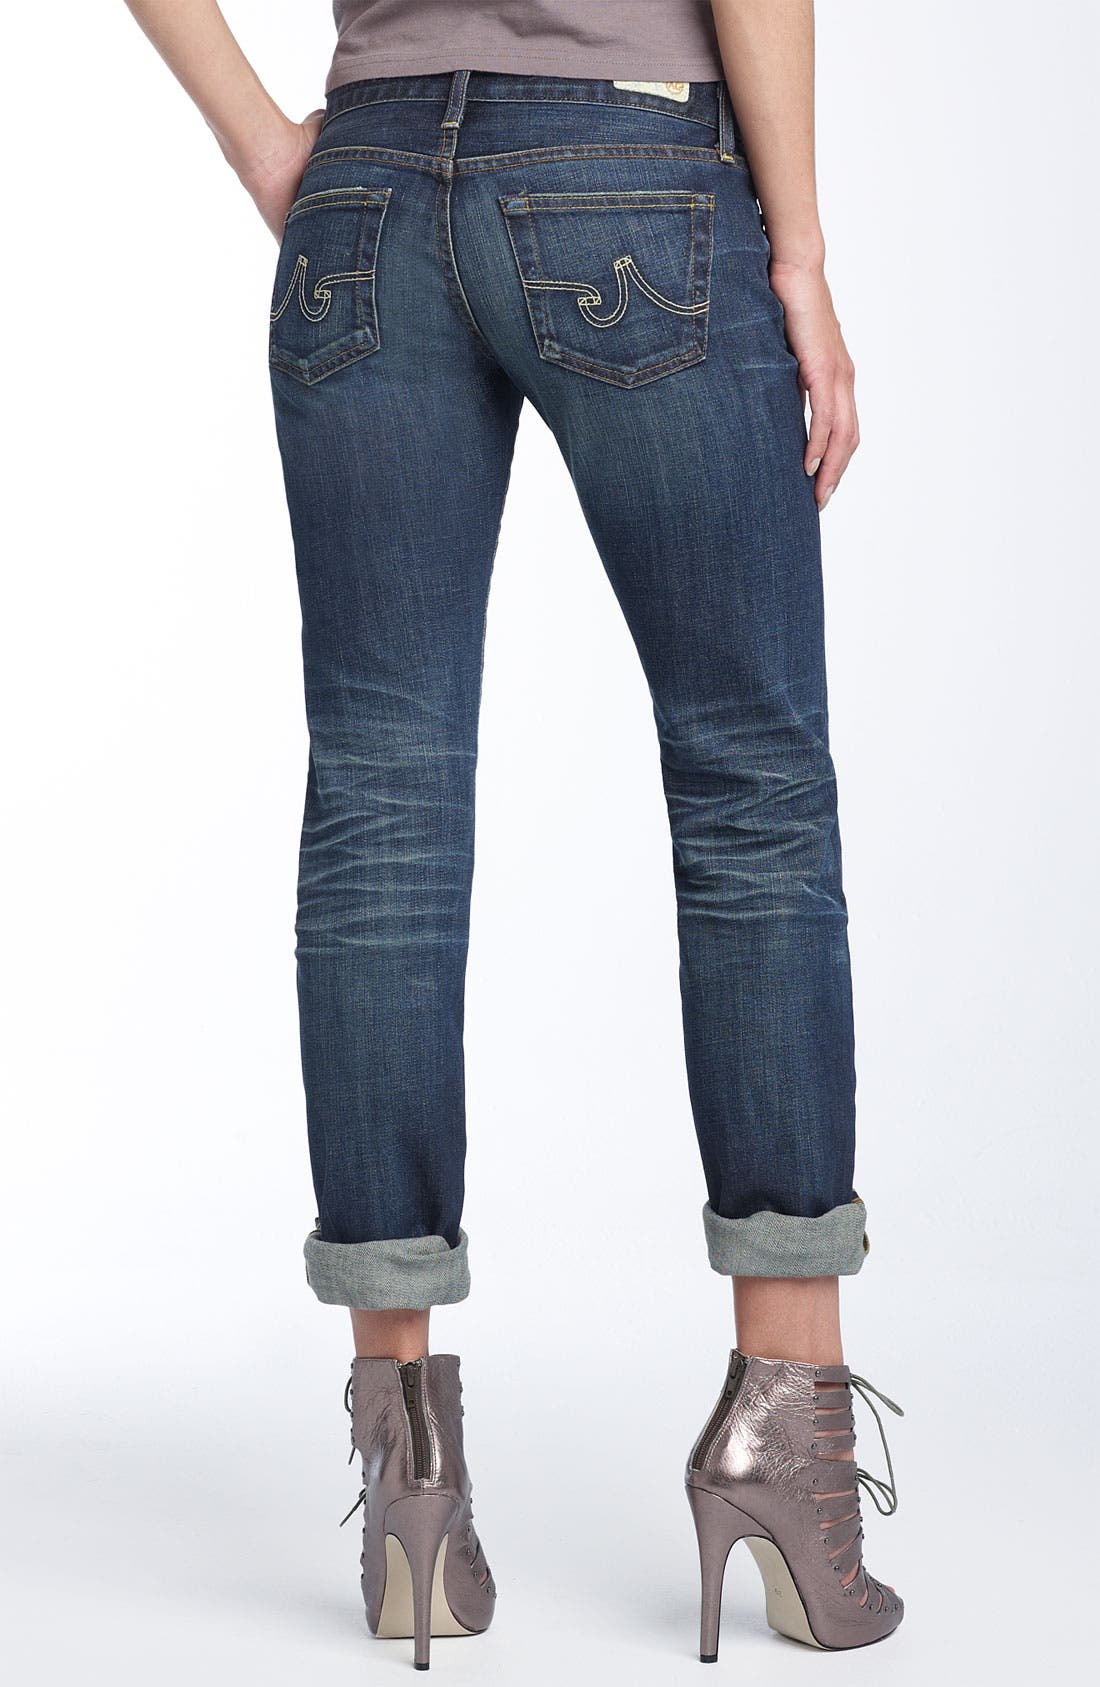 'The Tomboy' Relaxed Straight Leg Jeans,                             Main thumbnail 1, color,